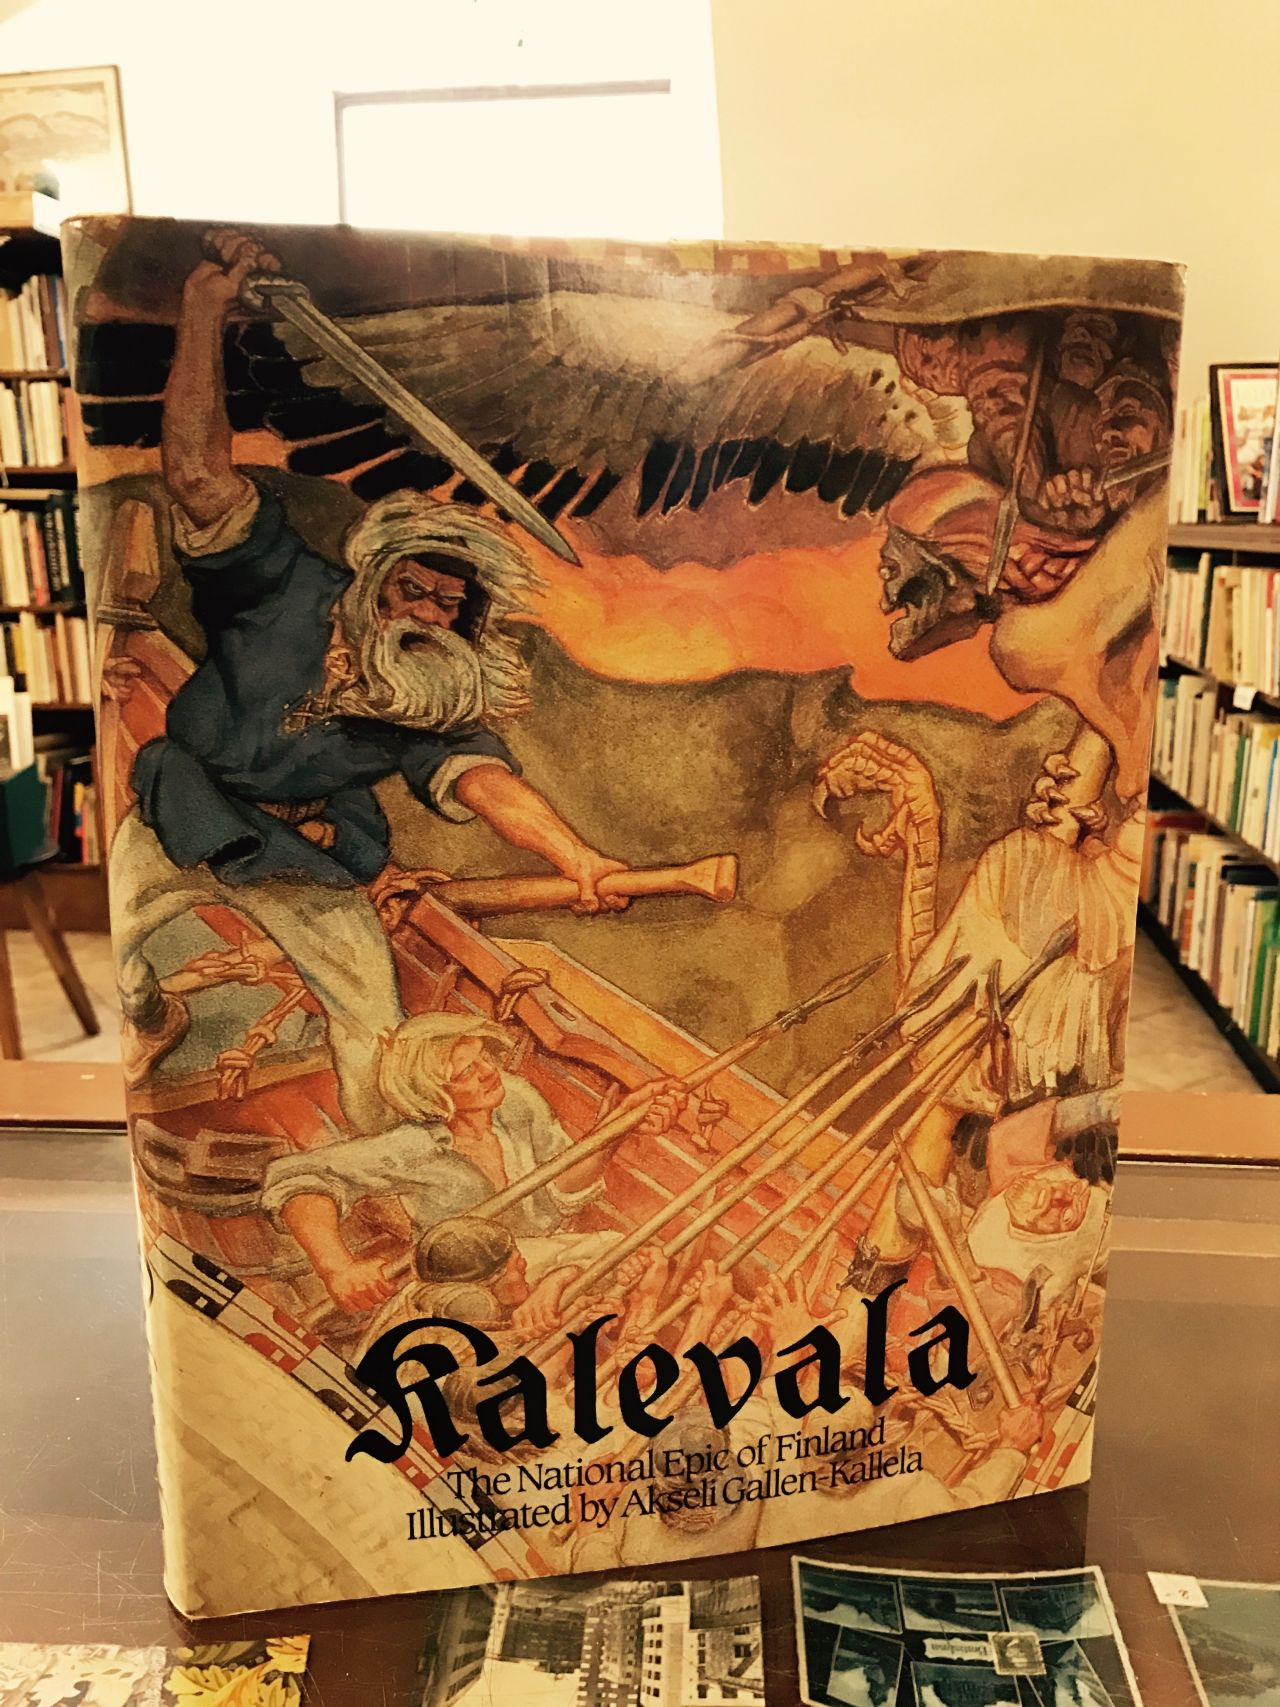 Kalevala. The National Epic of Finland File 6.12.16 12 43 16